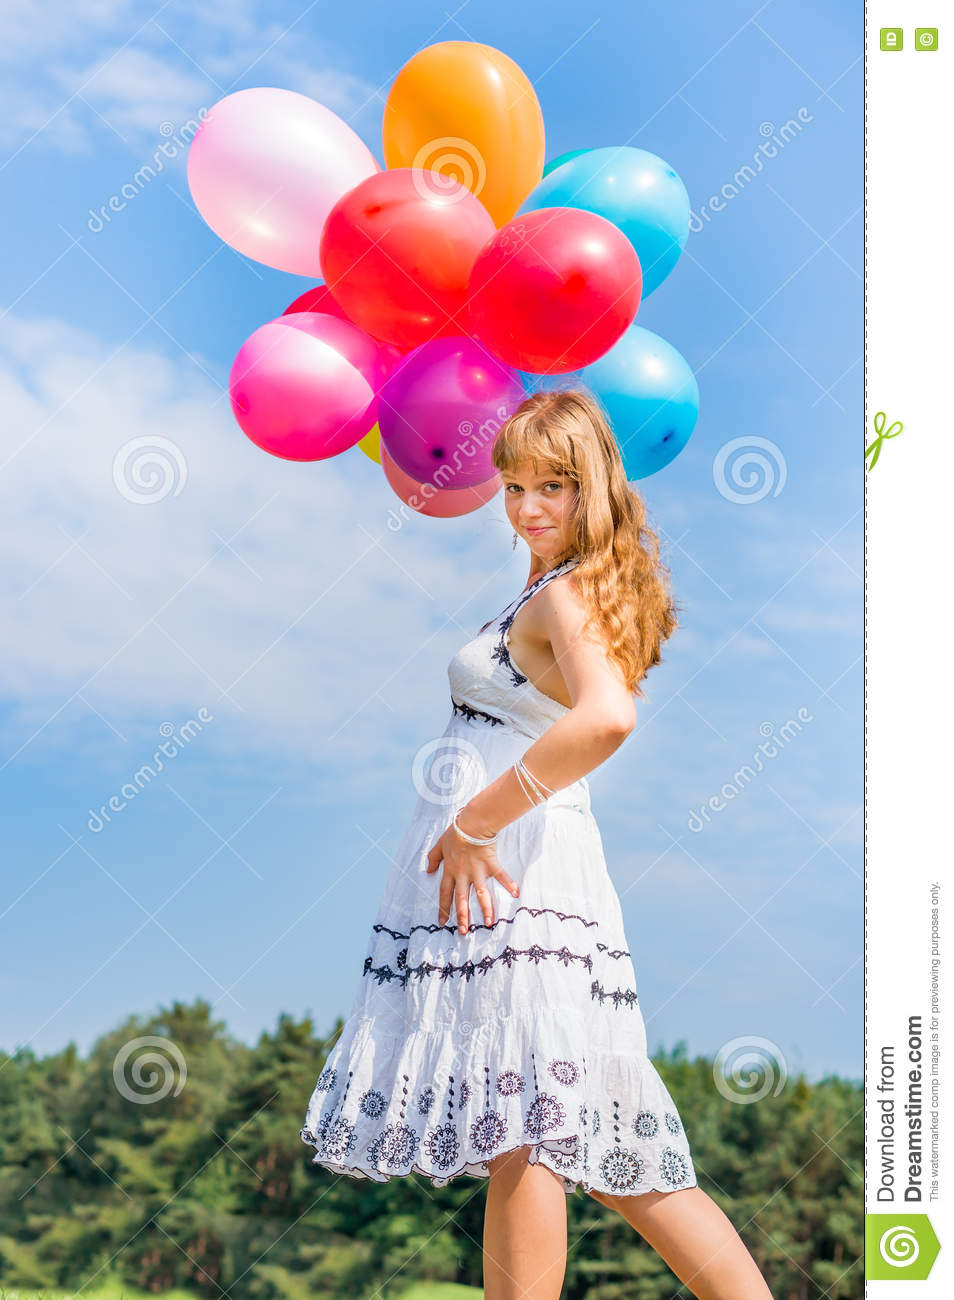 Happy Young Lady Celebrates Birthday And Playing With Balloons